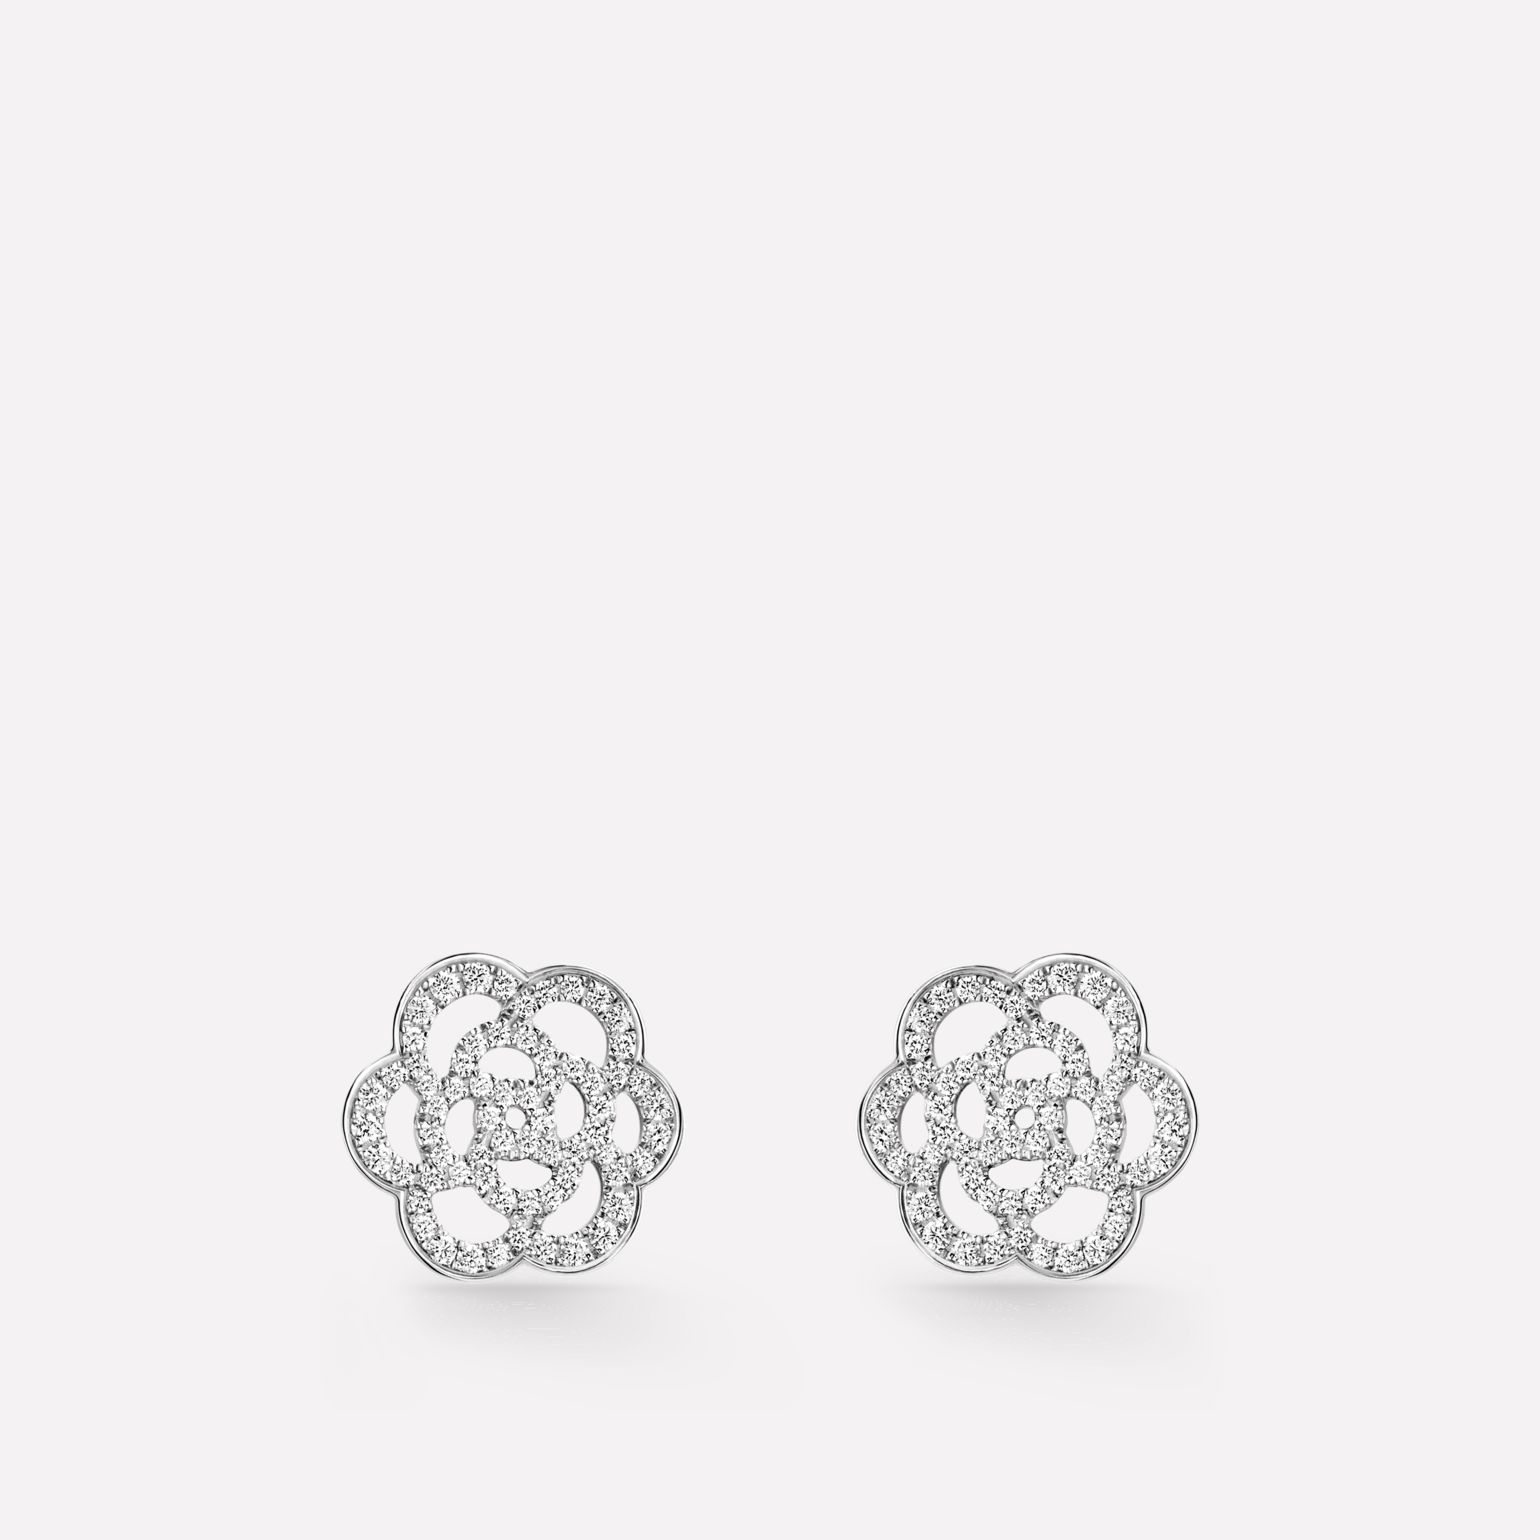 Camélia Ajouré earrings 18K white gold, diamonds